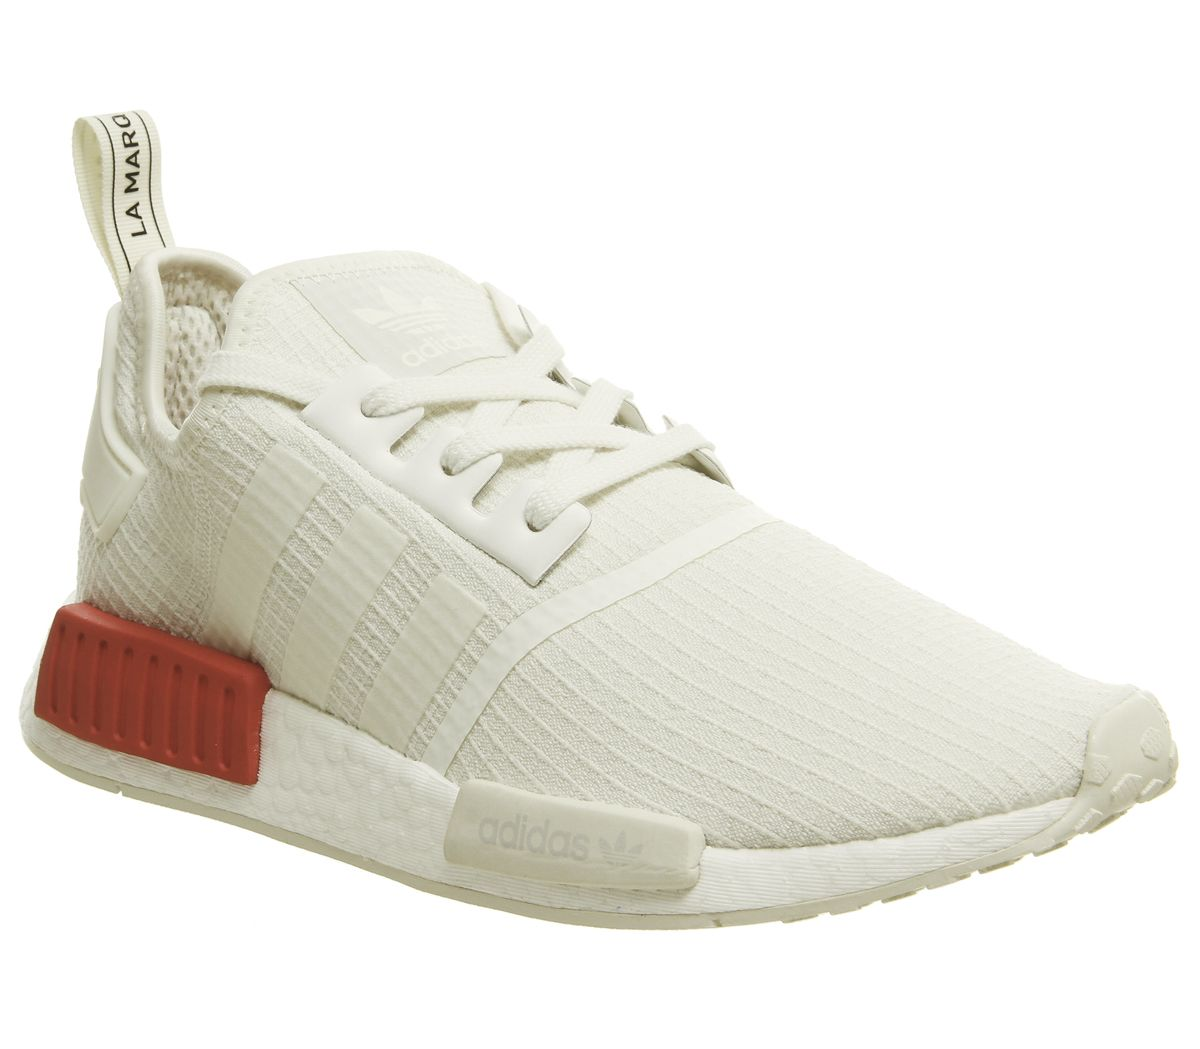 quality design 0c26a c949b Nmd R1 Trainers